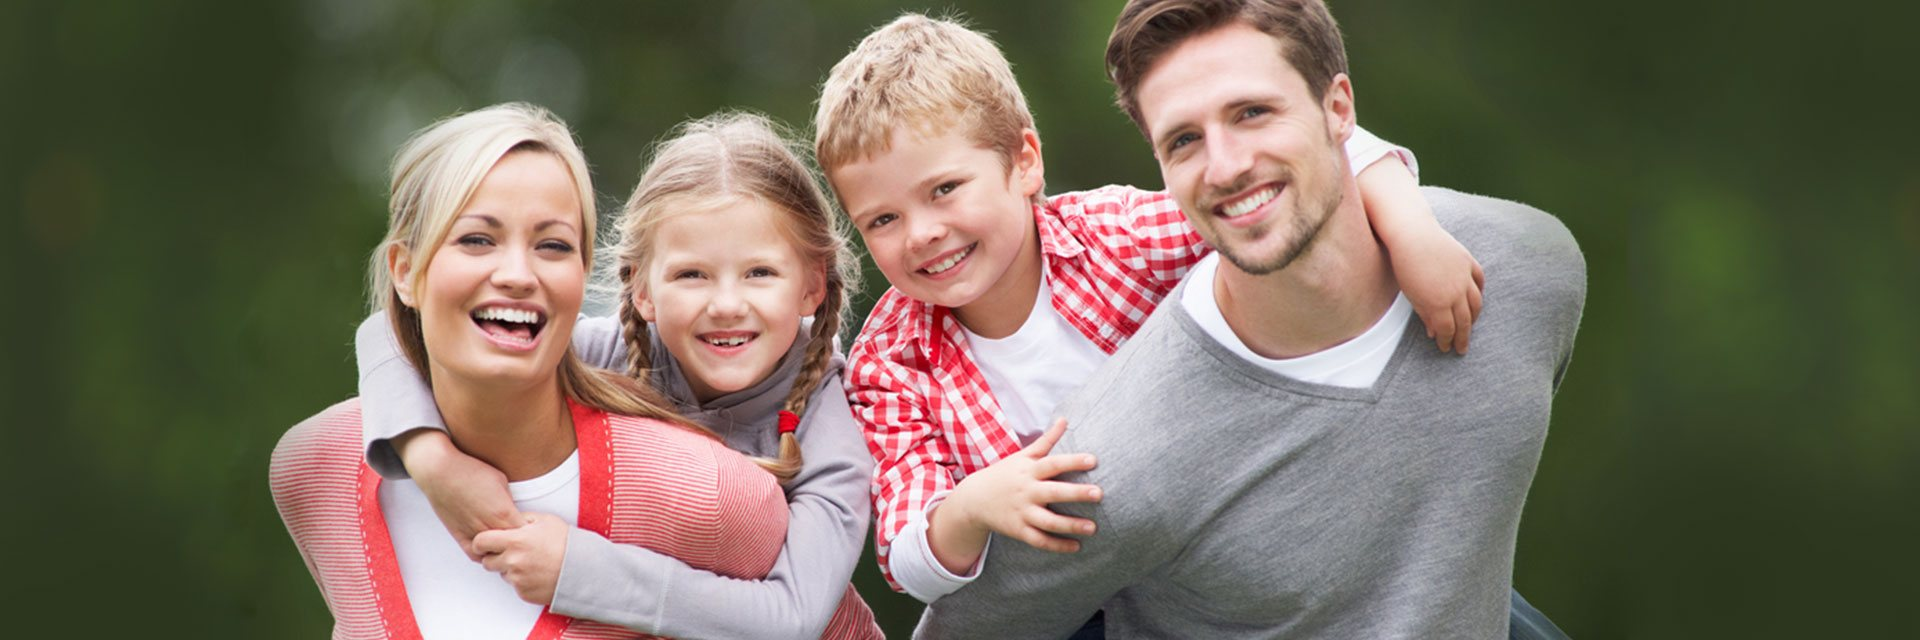 banner happy family smiling discover dental